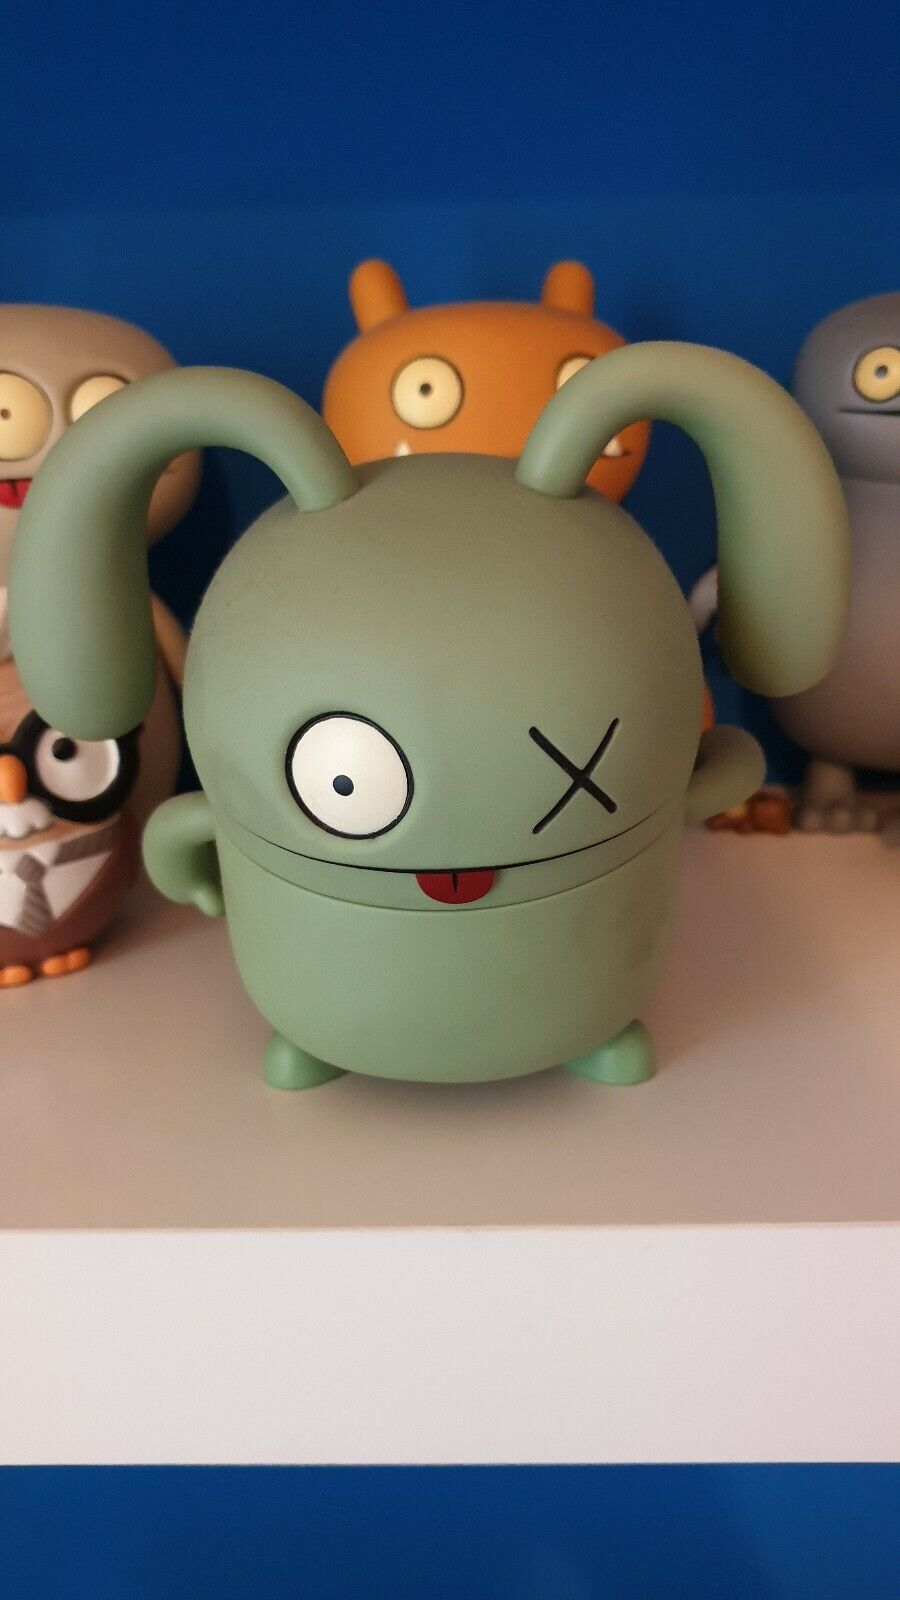 UGLYDOLL VINYL OX Critterbox 7  UGLY DOLL David Horvath VINILE RARE COLLECTION